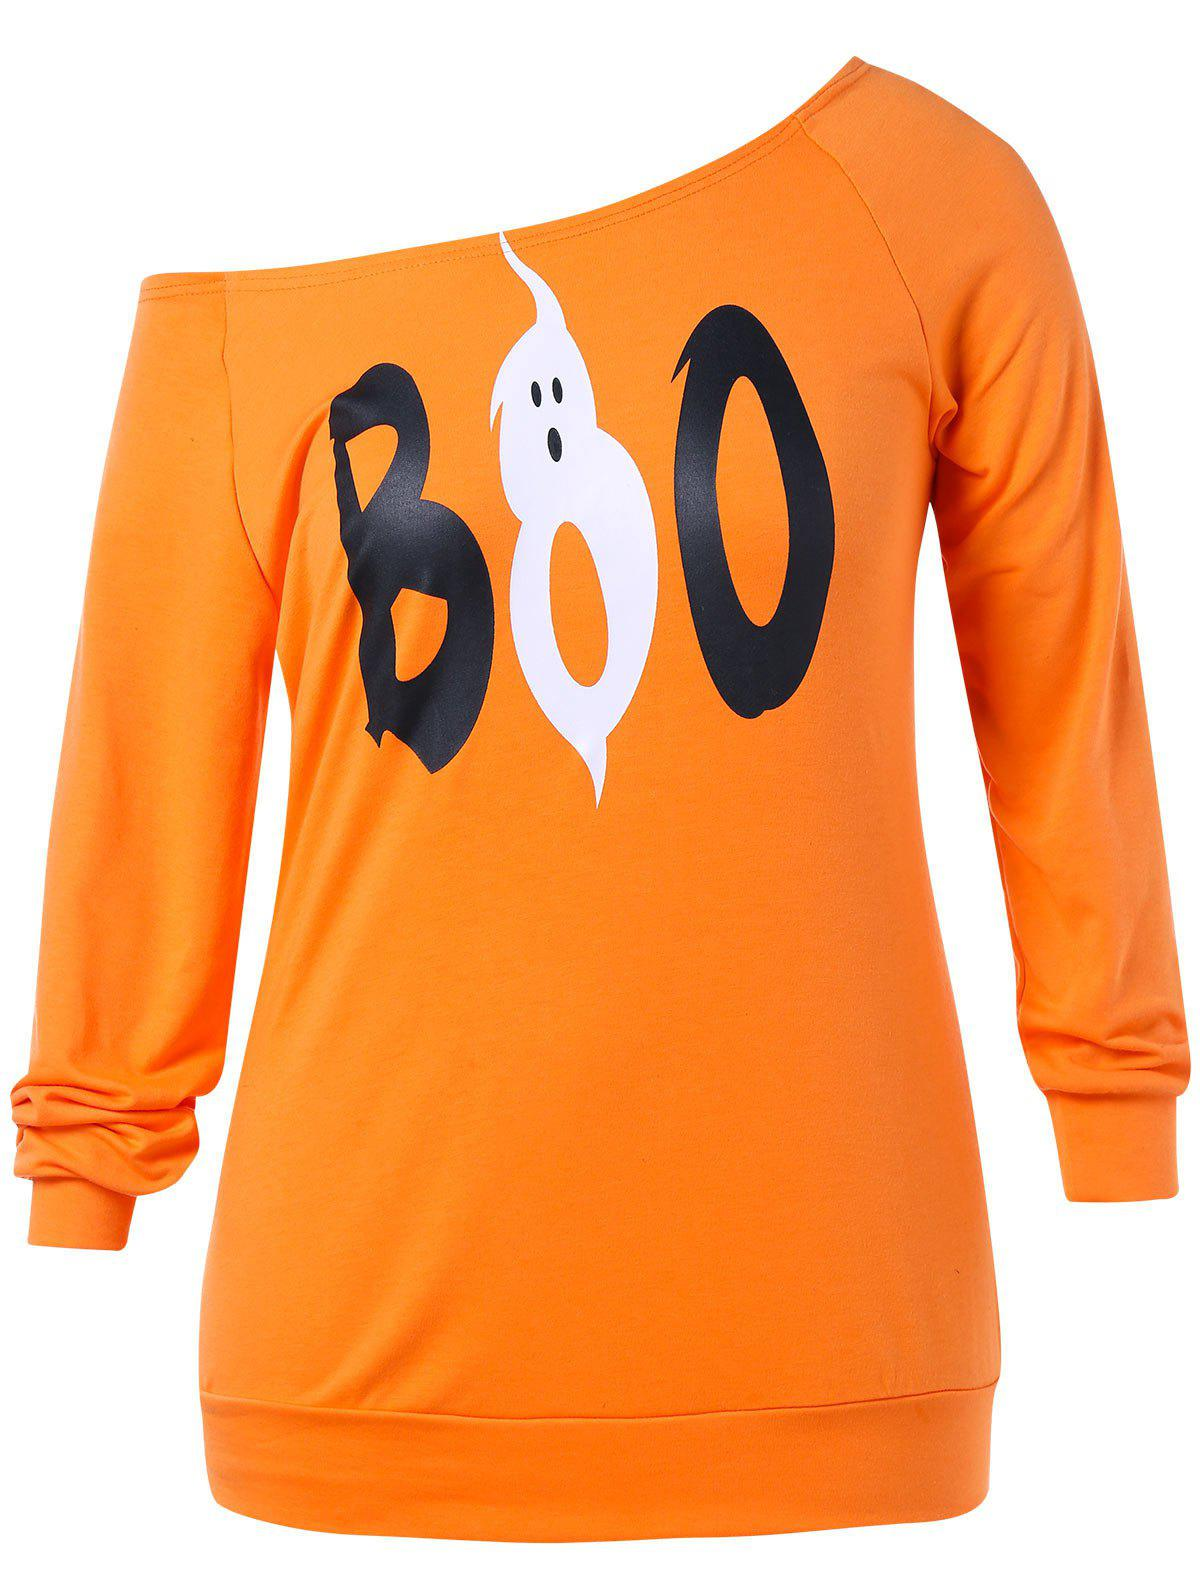 Plus Size Raglan Sleeve Halloween Sweatshirt - ORANGE 4X